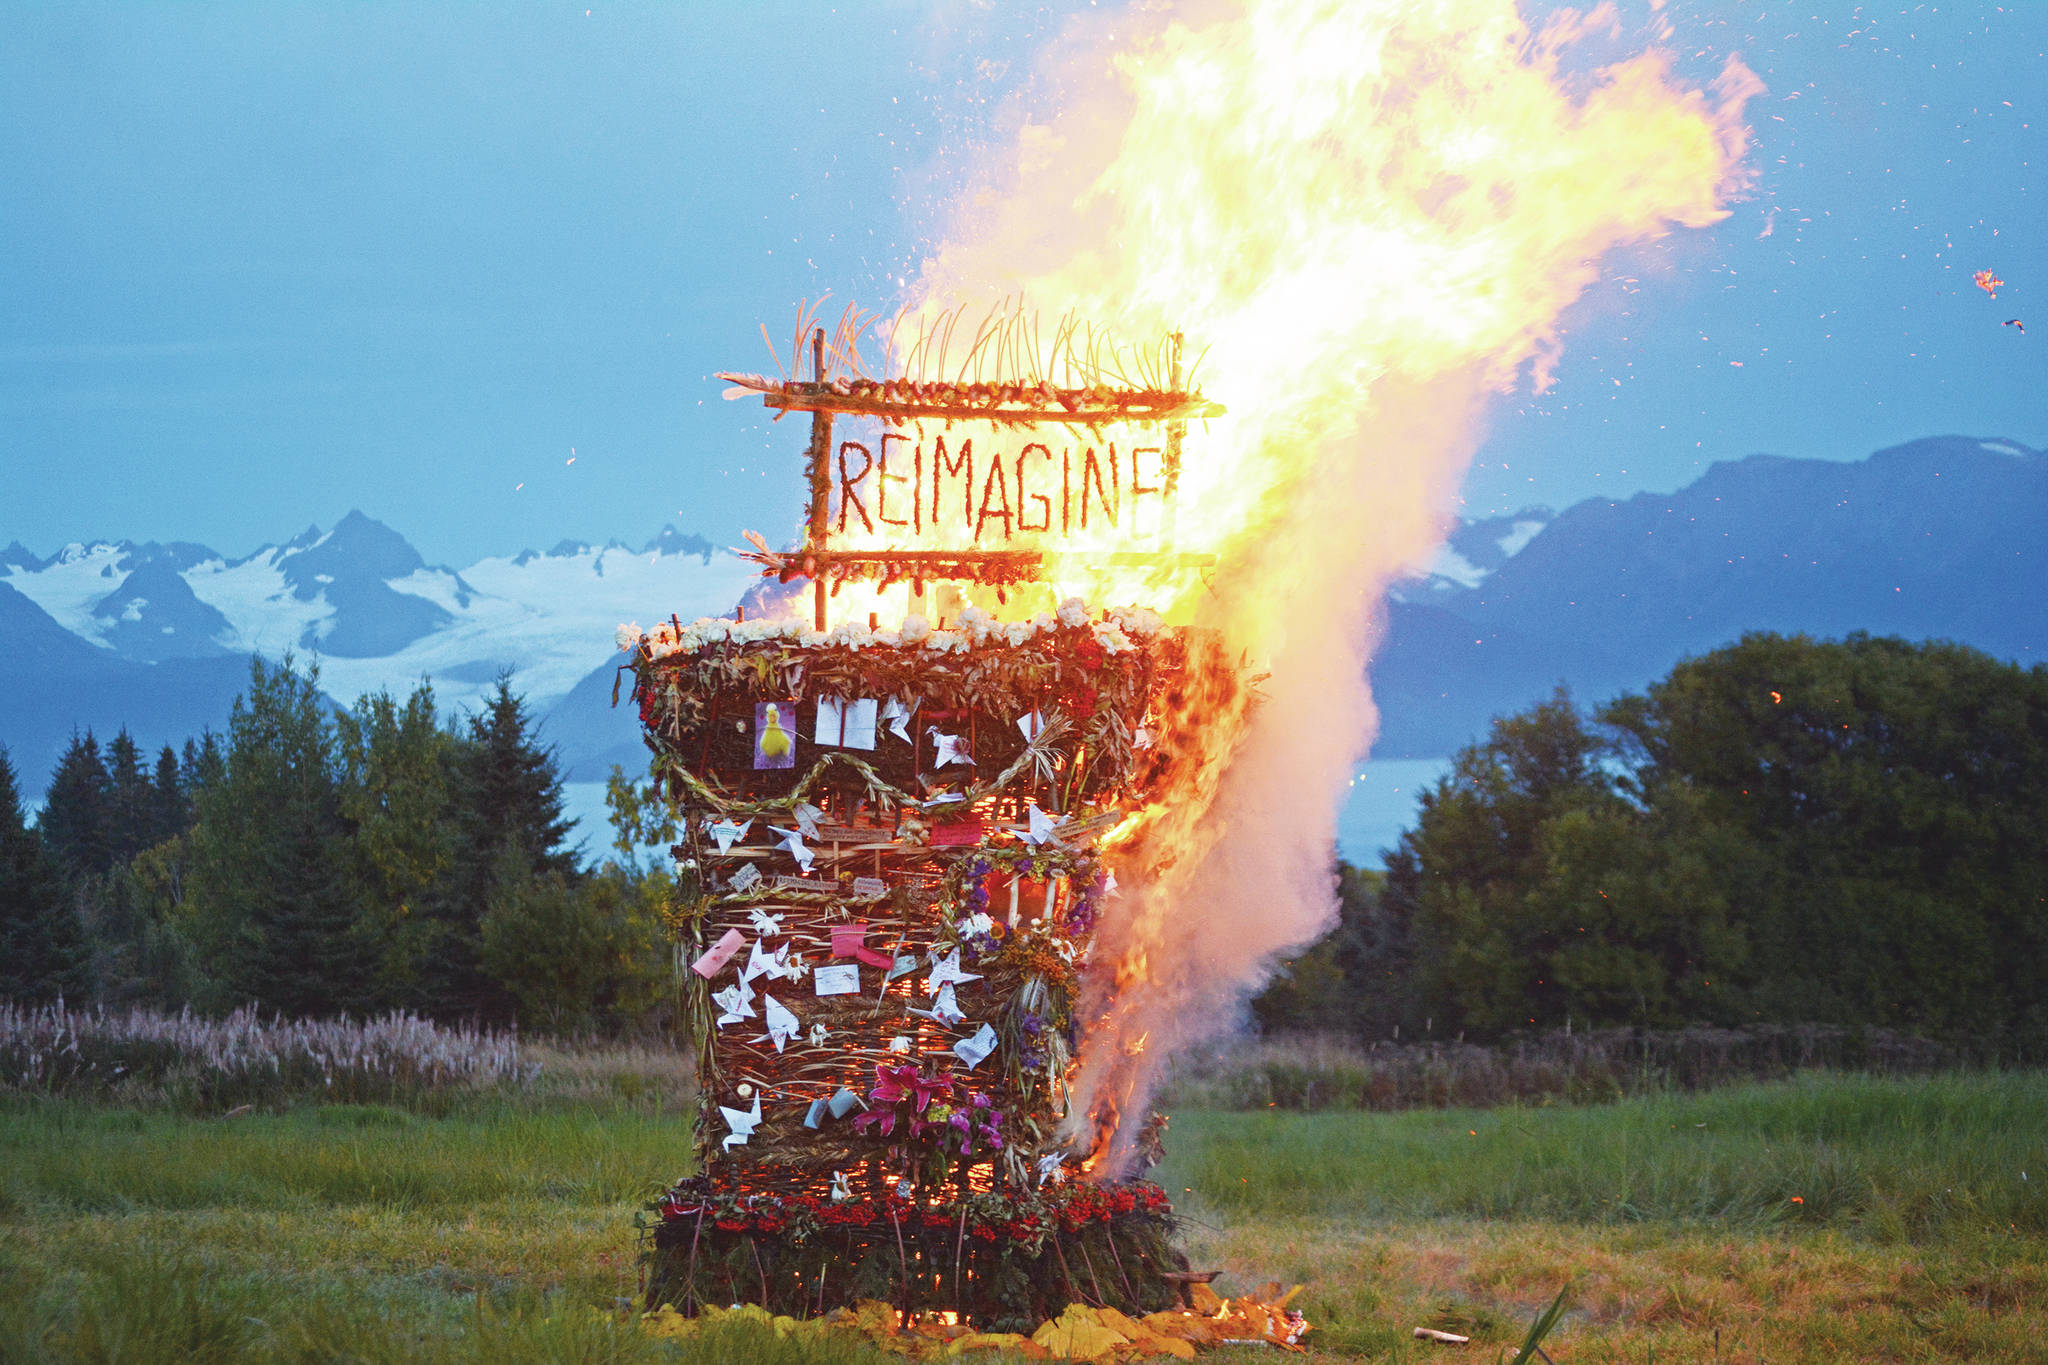 """""""Reimagine,"""" the 17th annual Burning Basket, catches fire in a field on Sunday, Sept. 13, near Homer. Artist Mavis Muller intended to broadcast live on Facebook and YouTube the burning of the basket, but because of technical difficulties that didn't happen. (Photo by Michael Armstrong/Homer News)"""